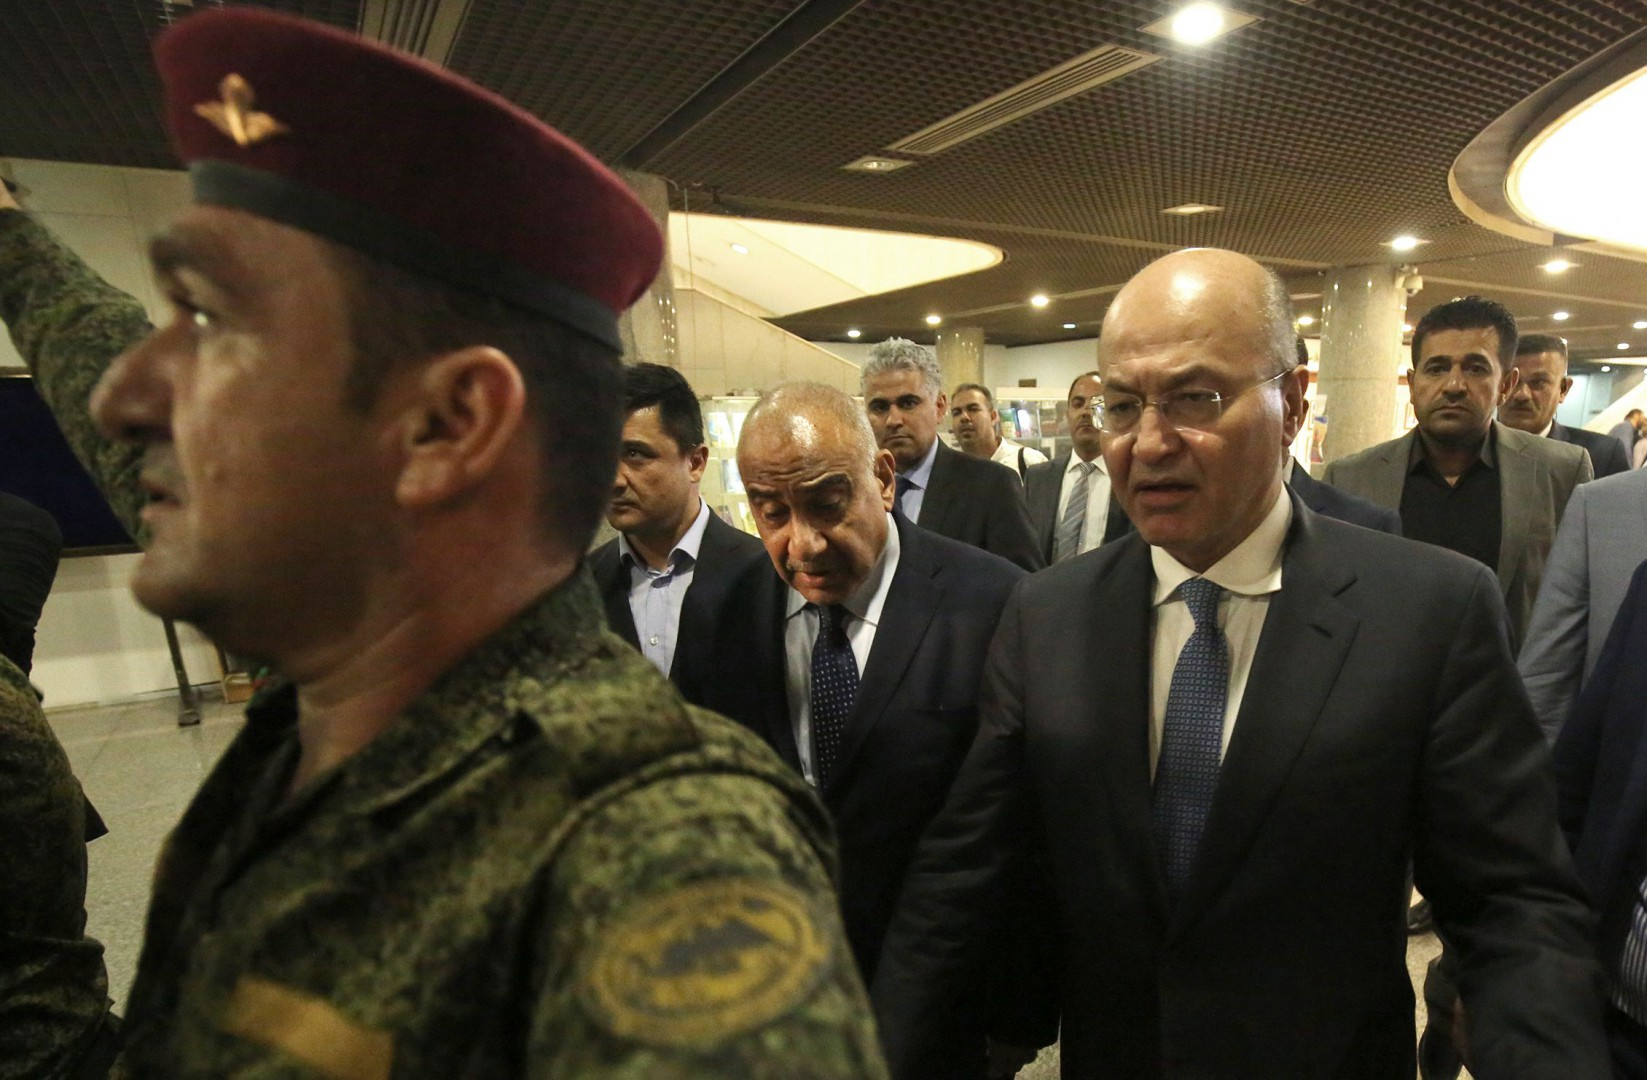 Newly designated Iraqi Prime Minister Adel Abdul Mahdi (C L) walks out of the Parliament with newly-elected Iraqi President Barham Saleh (C R)in Baghdad on October 2, 2018. (Photo by AHMAD AL-RUBAYE / AFP)